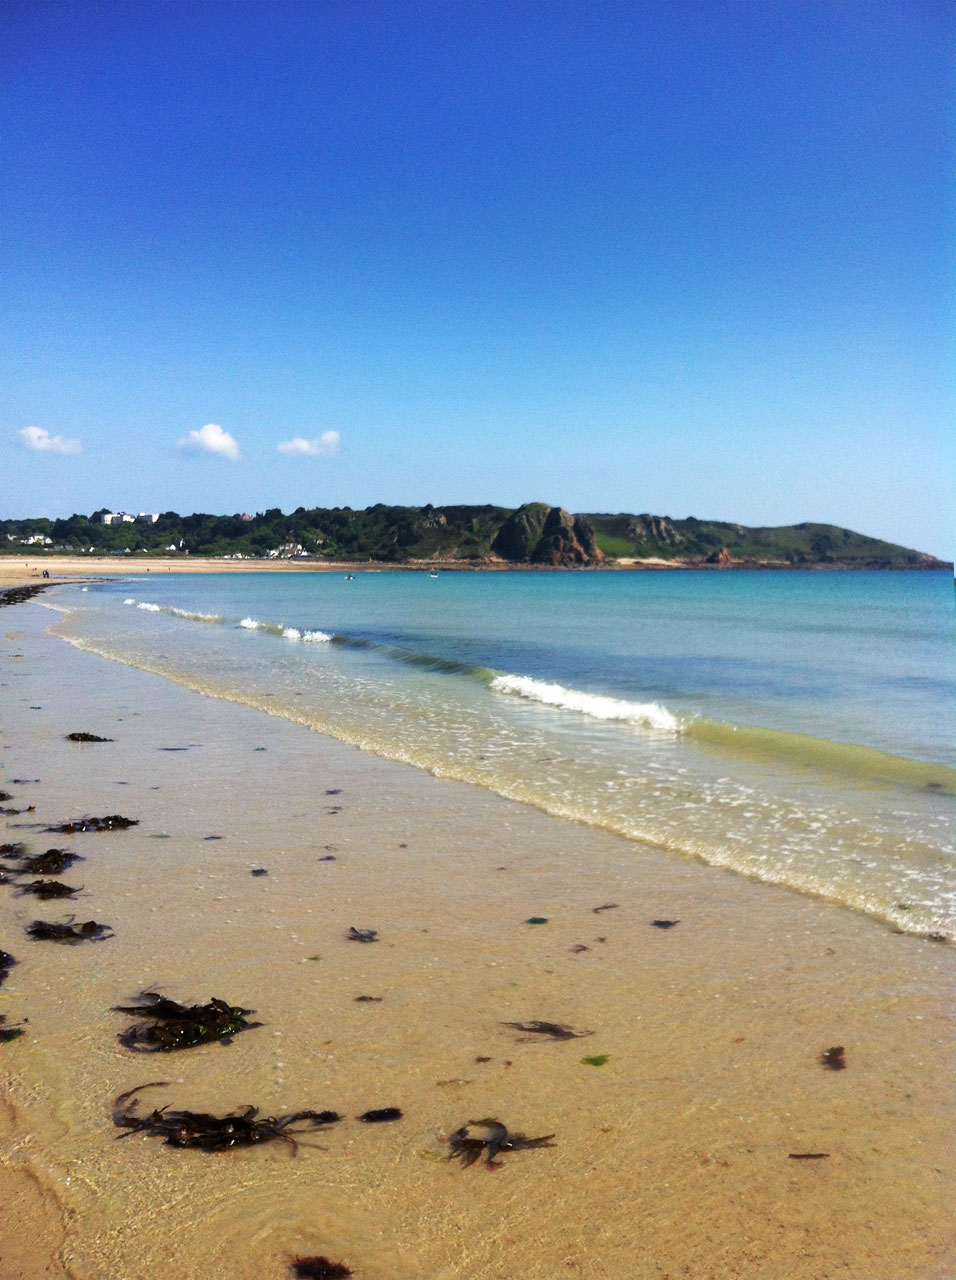 Beach at St Brelade's Bay in Jersey